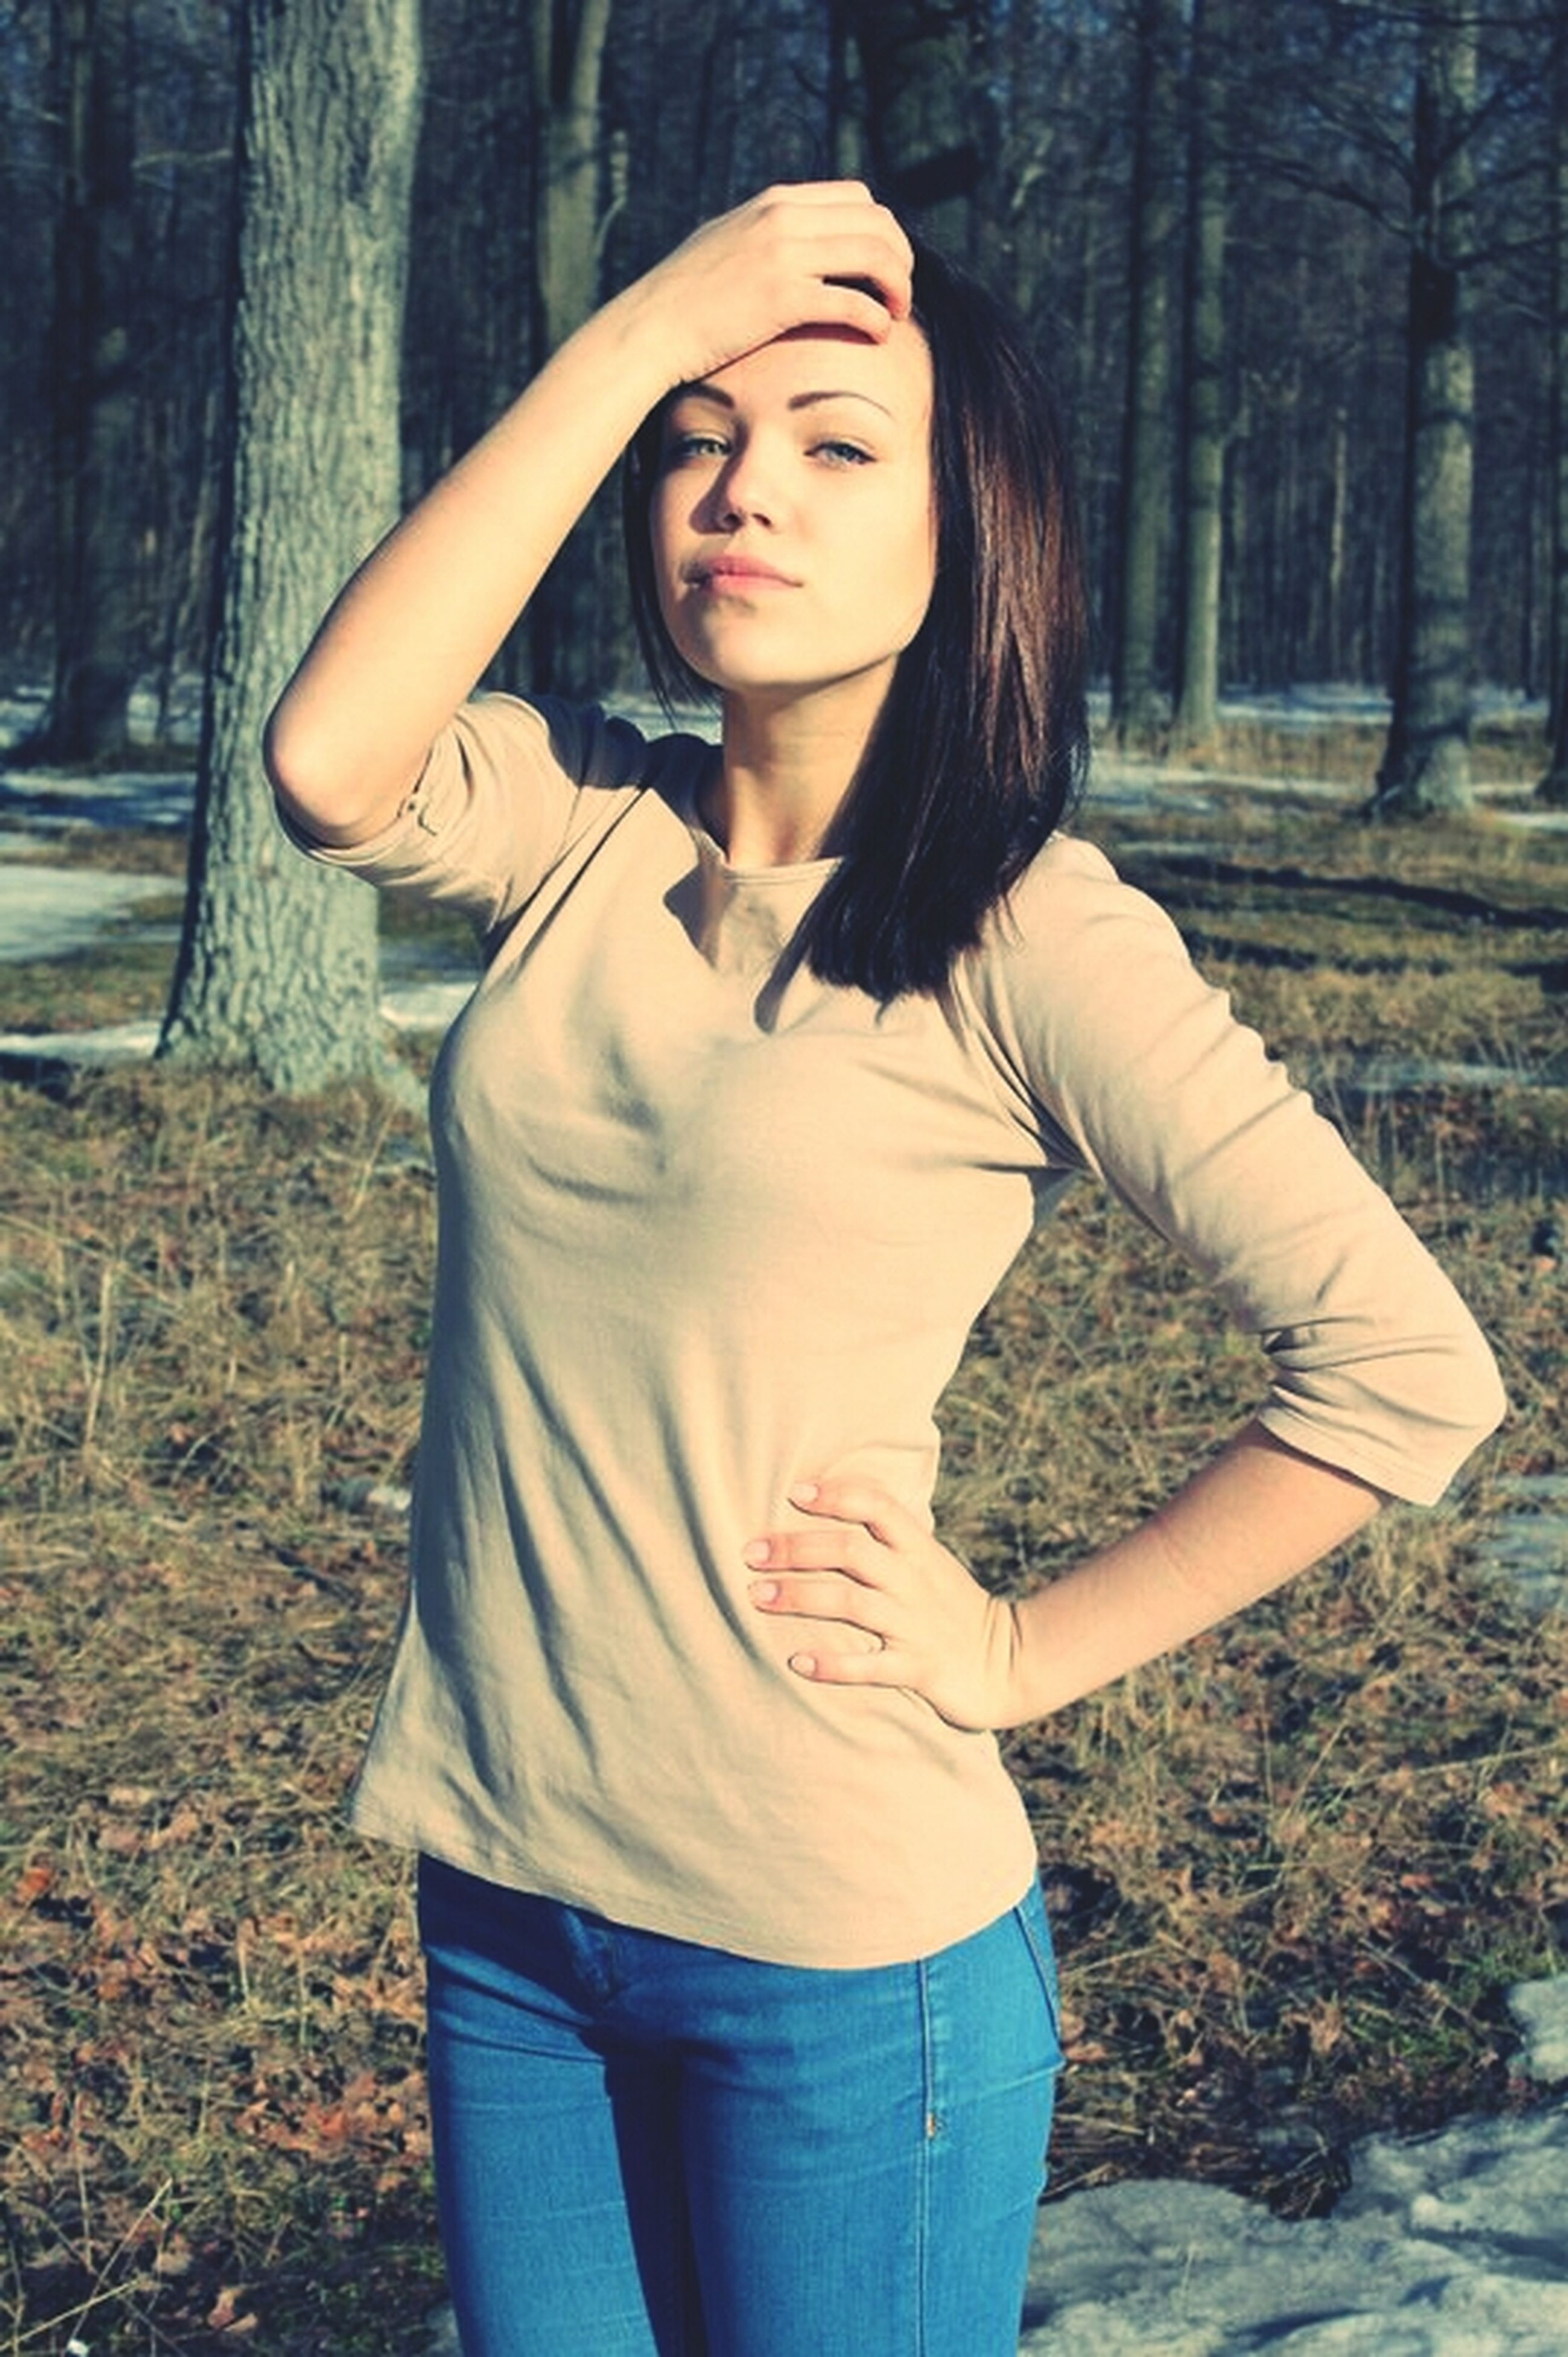 young adult, tree, young women, forest, lifestyles, standing, front view, casual clothing, person, three quarter length, long hair, portrait, waist up, looking at camera, tree trunk, leisure activity, beauty